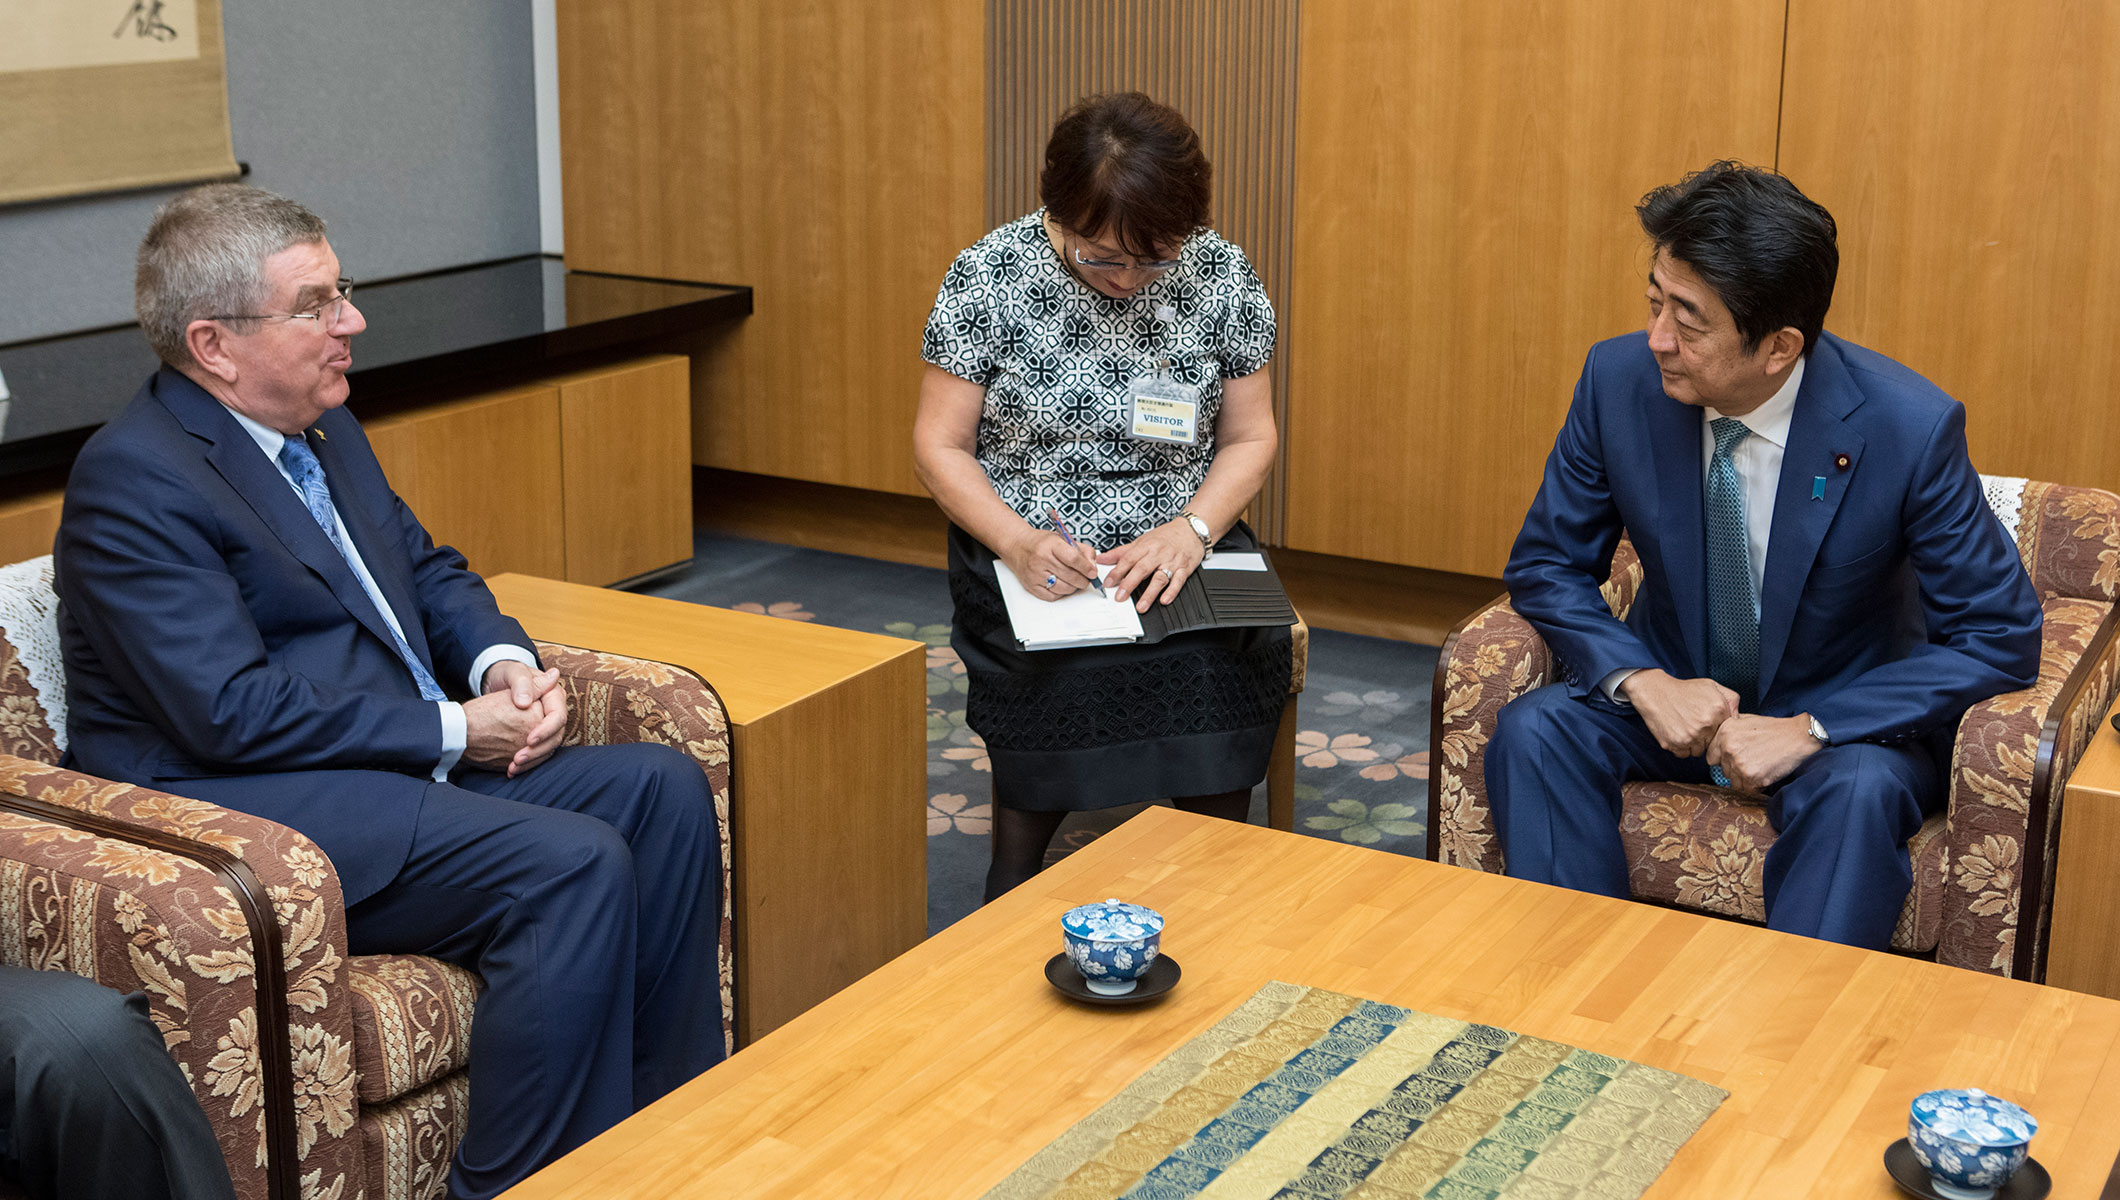 IOC President Thomas Bach and Japanese Prime Minister Shinzo Abe